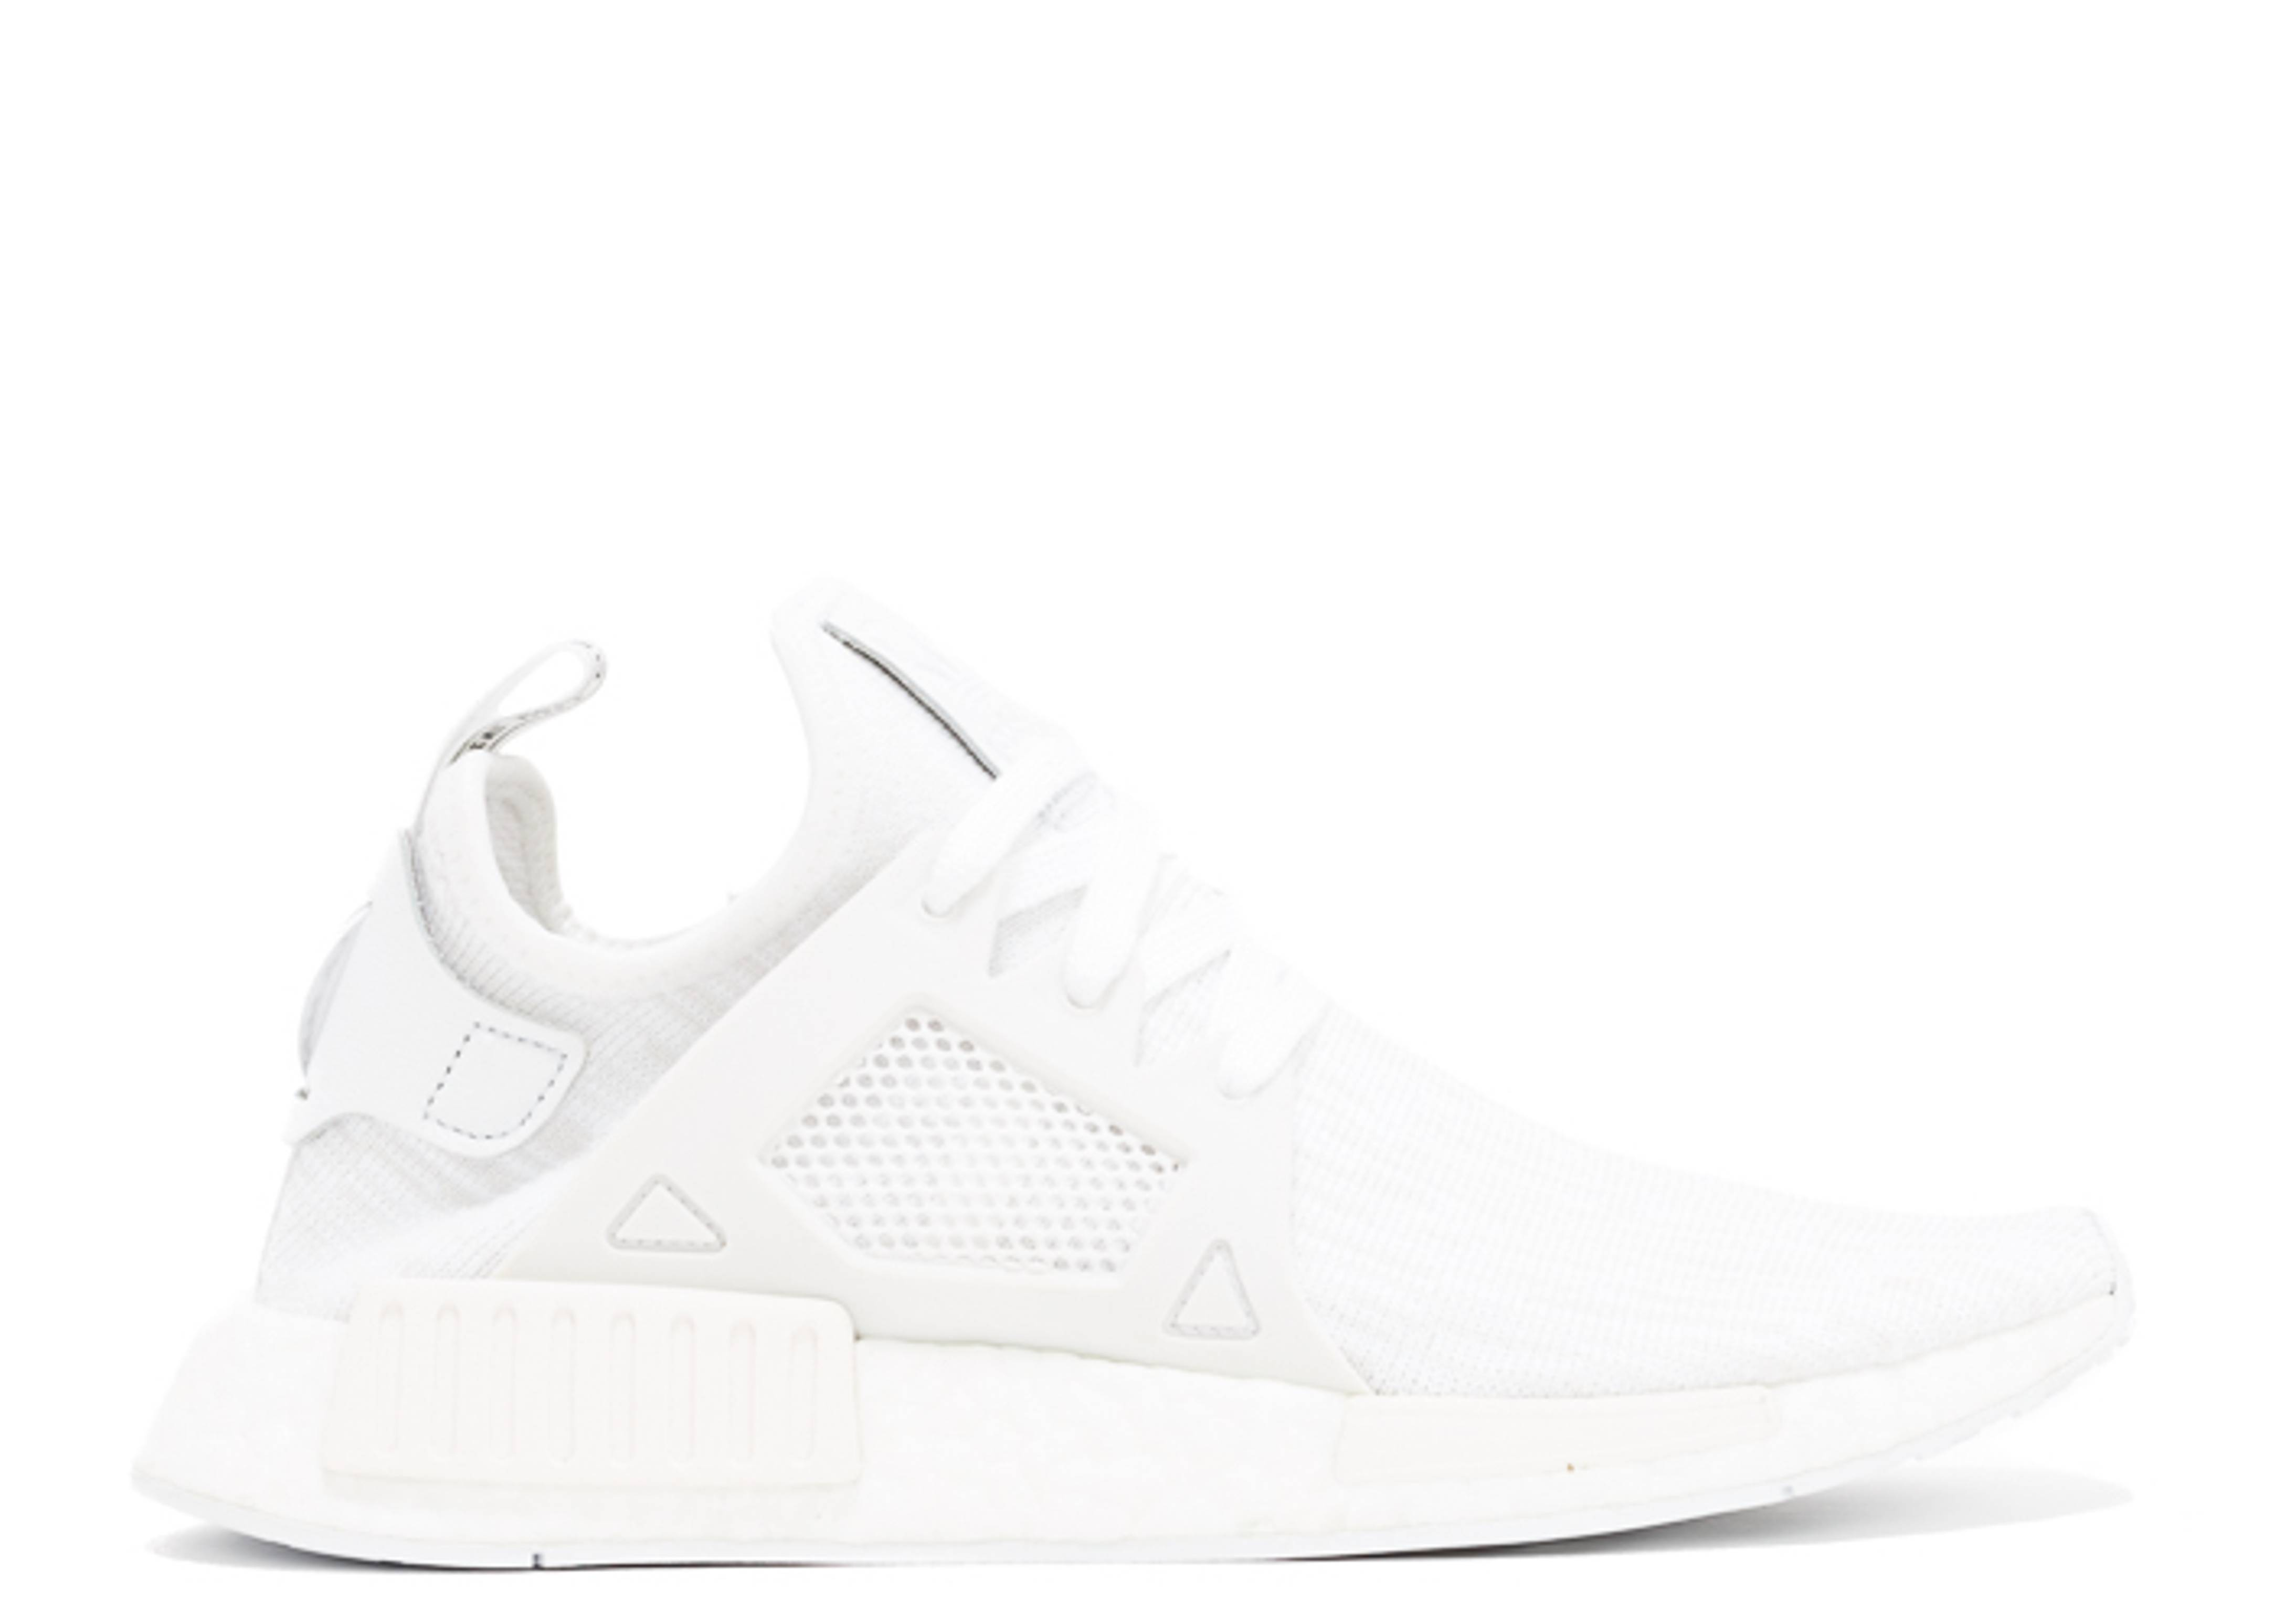 adidas nmd xr1 all white